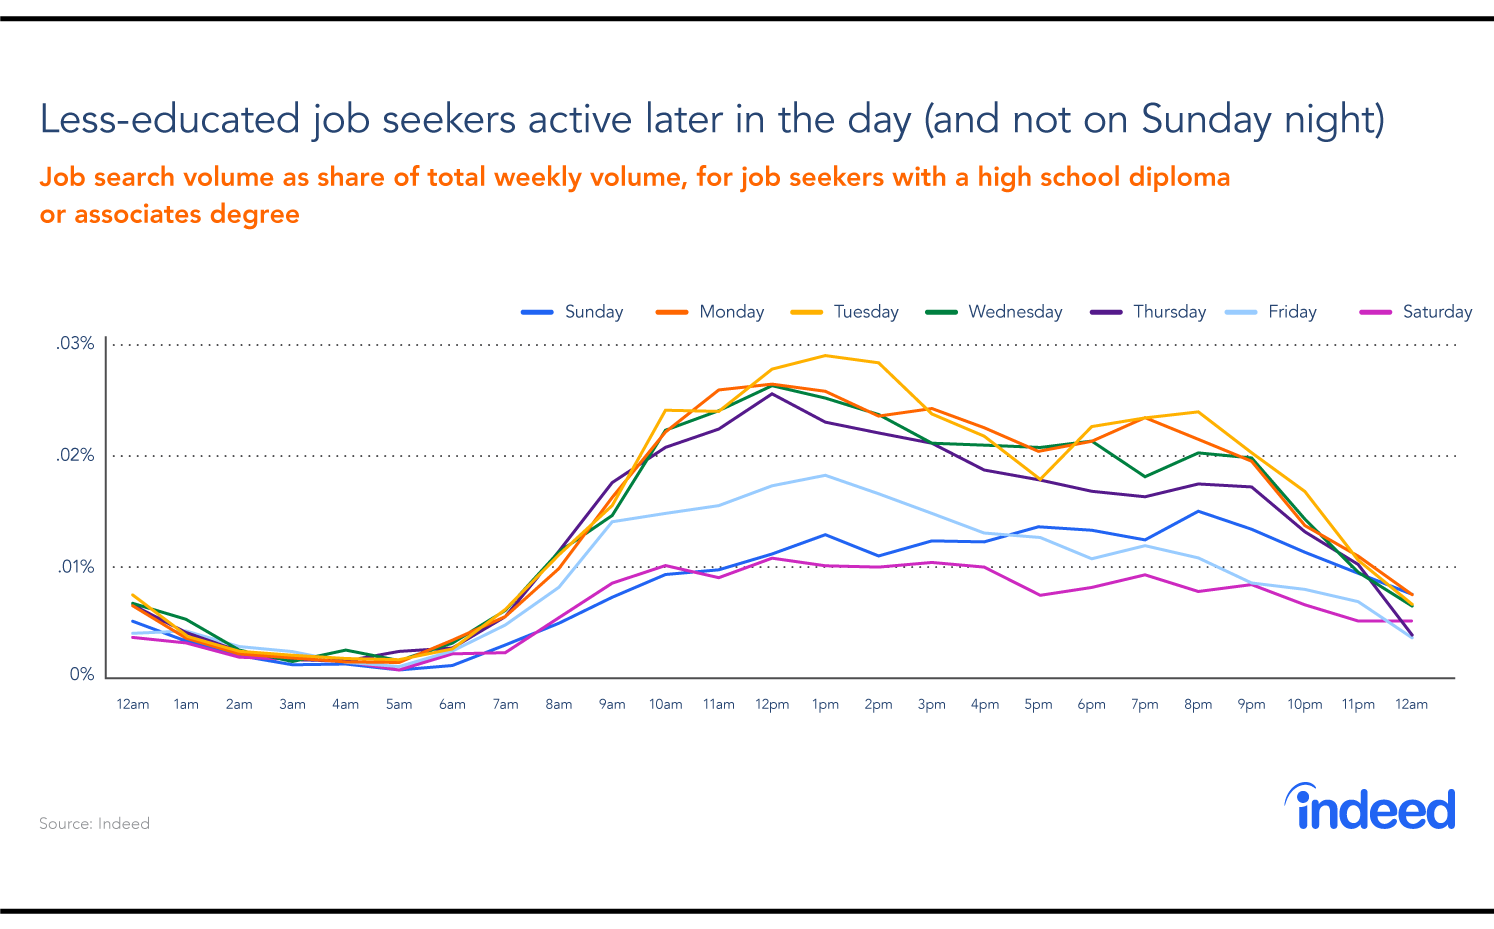 A graph showing the busiest days of the week and times of day that less-educated people look for jobs.